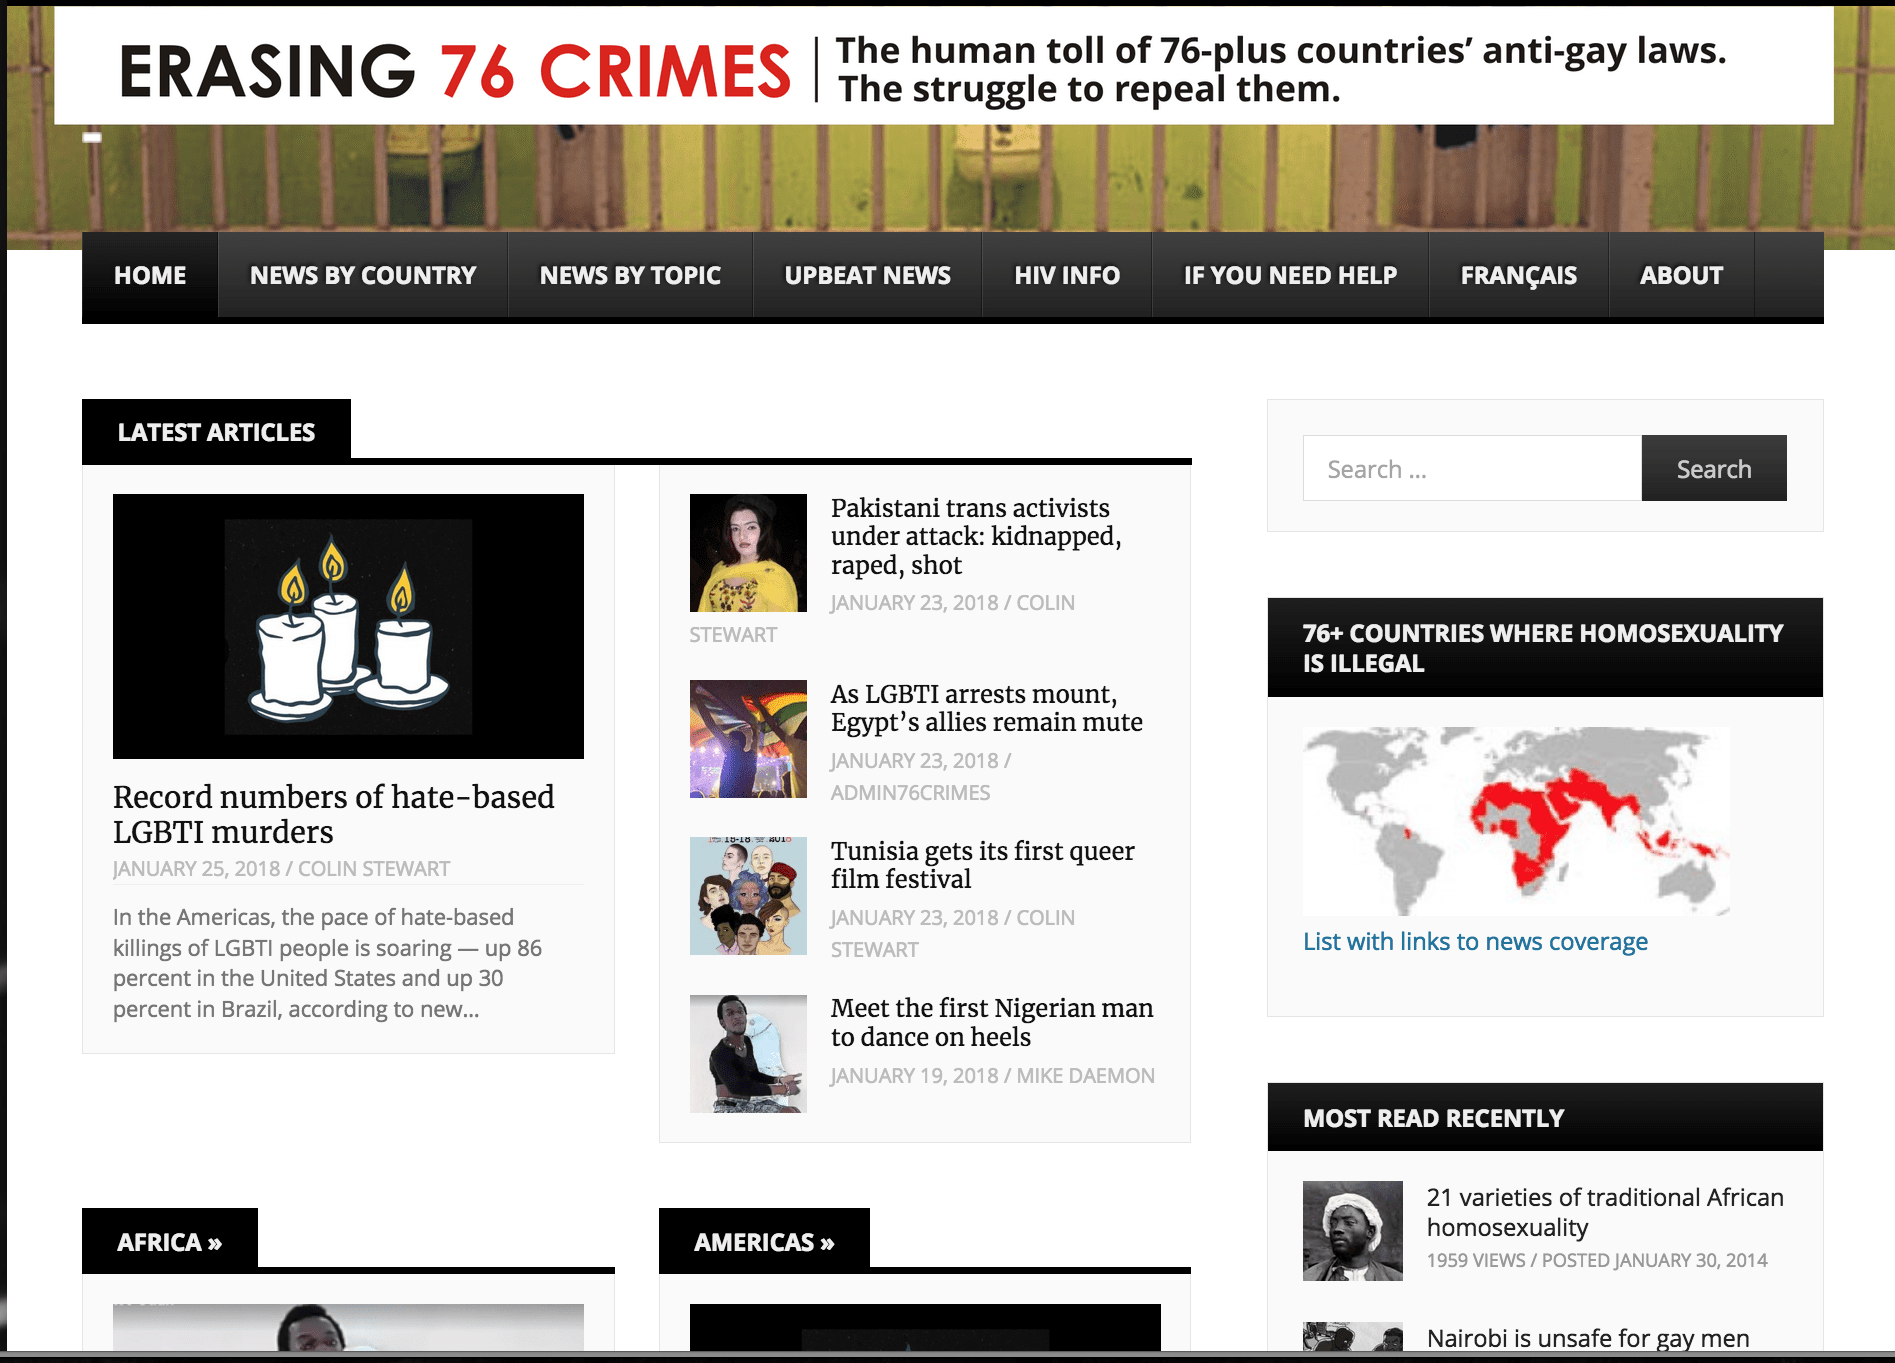 The top of the Erasing 76 Crimes homepage on Jan. 25, 2018.